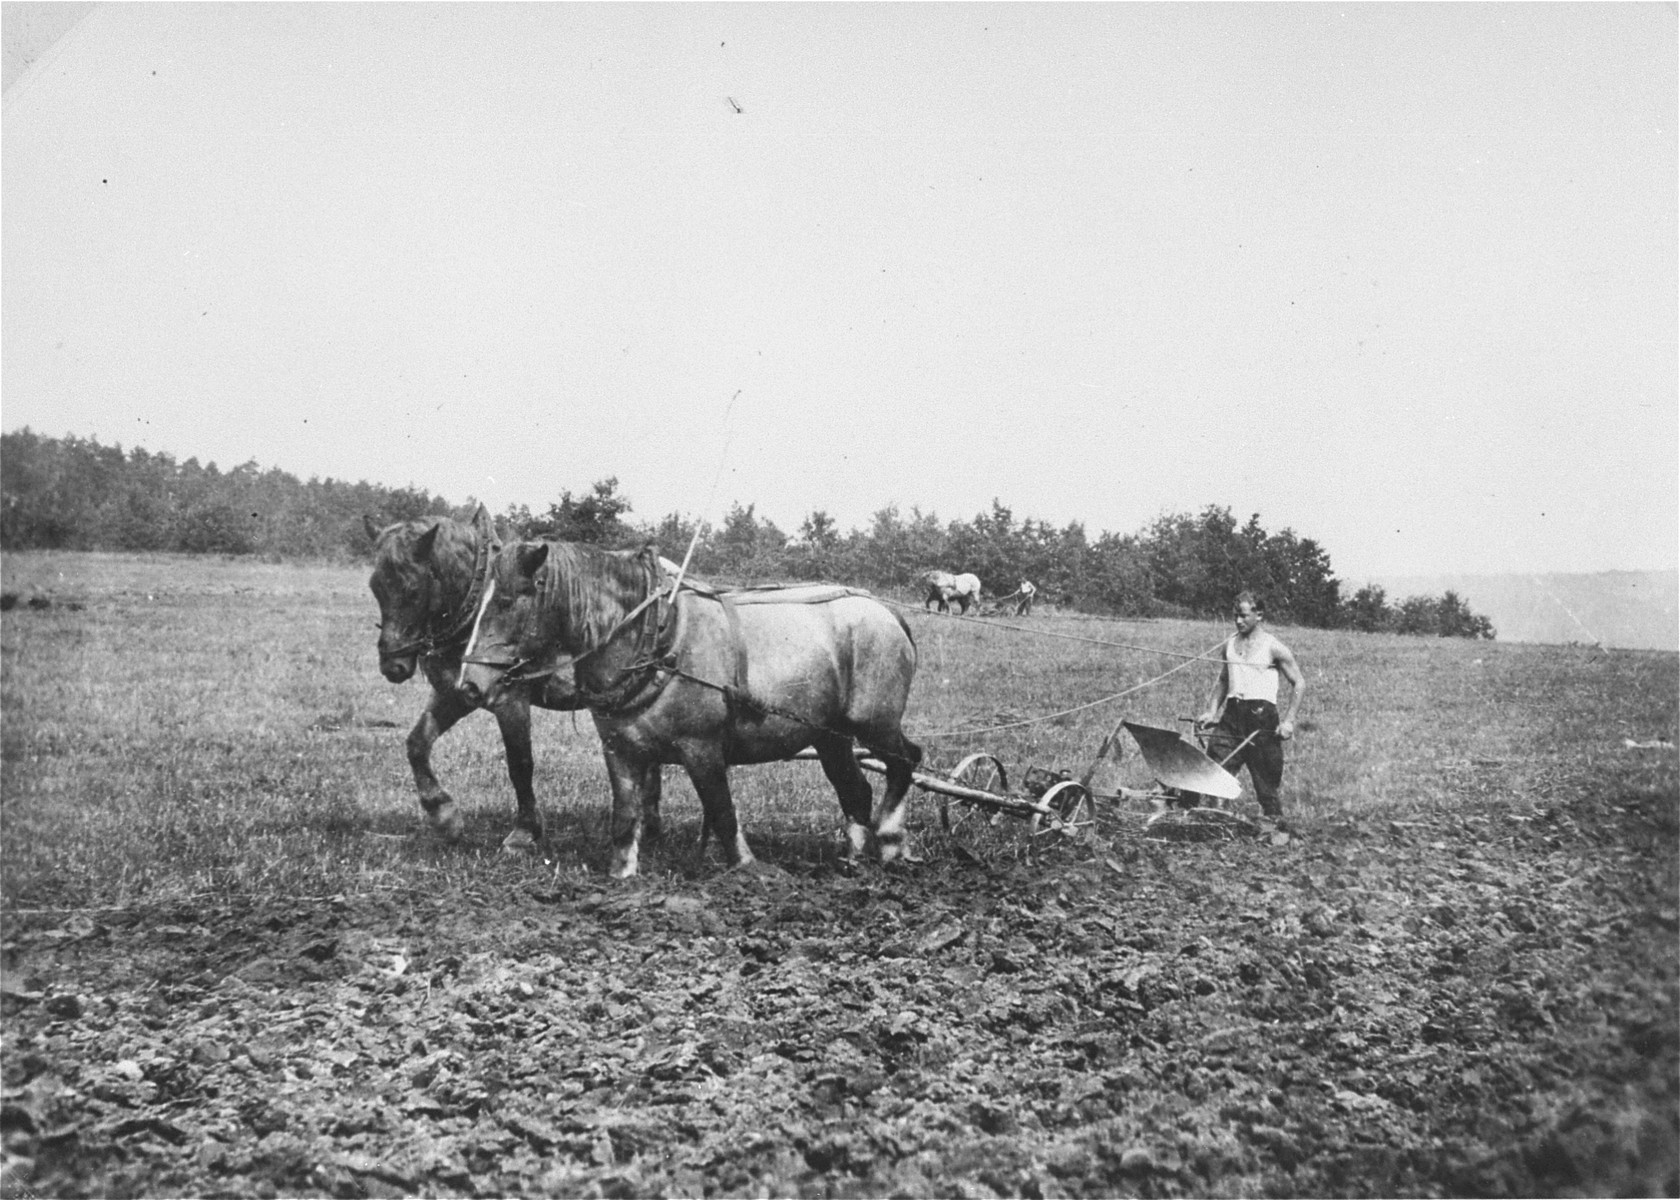 A member of Kibbutz Buchenwald plows the fields with a team of horses.